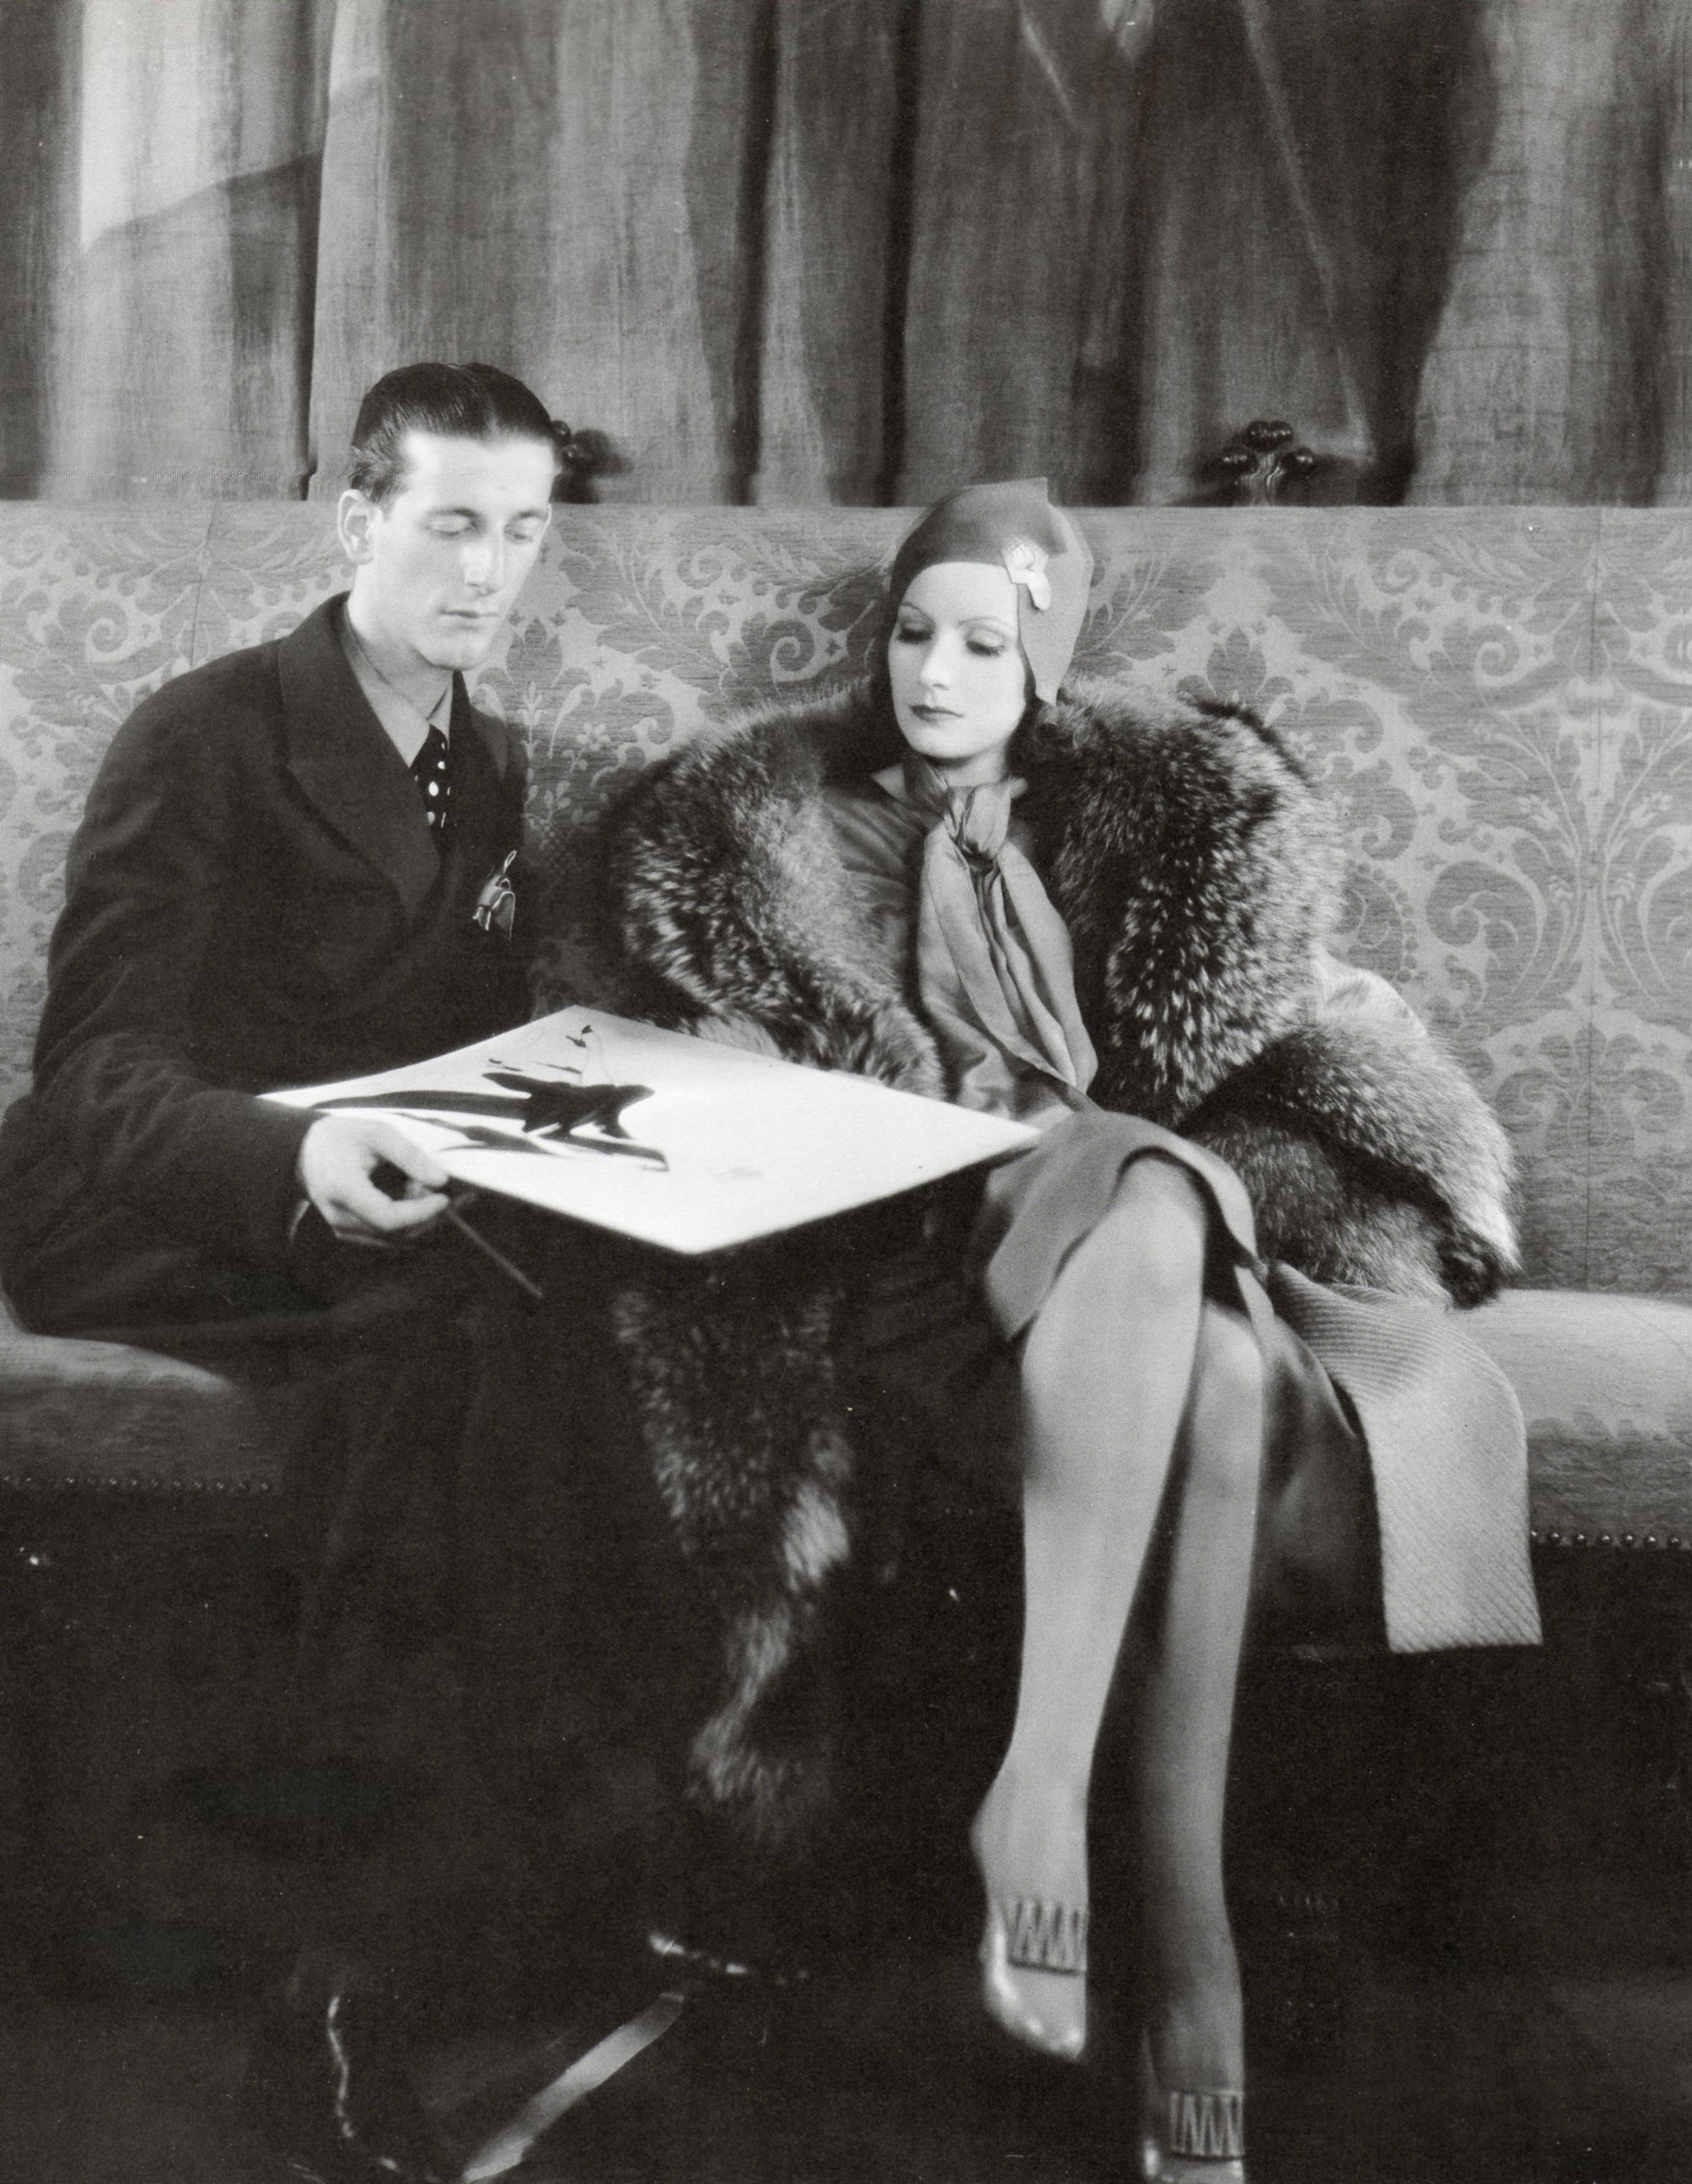 Adrian and Greta Garbo, 1930